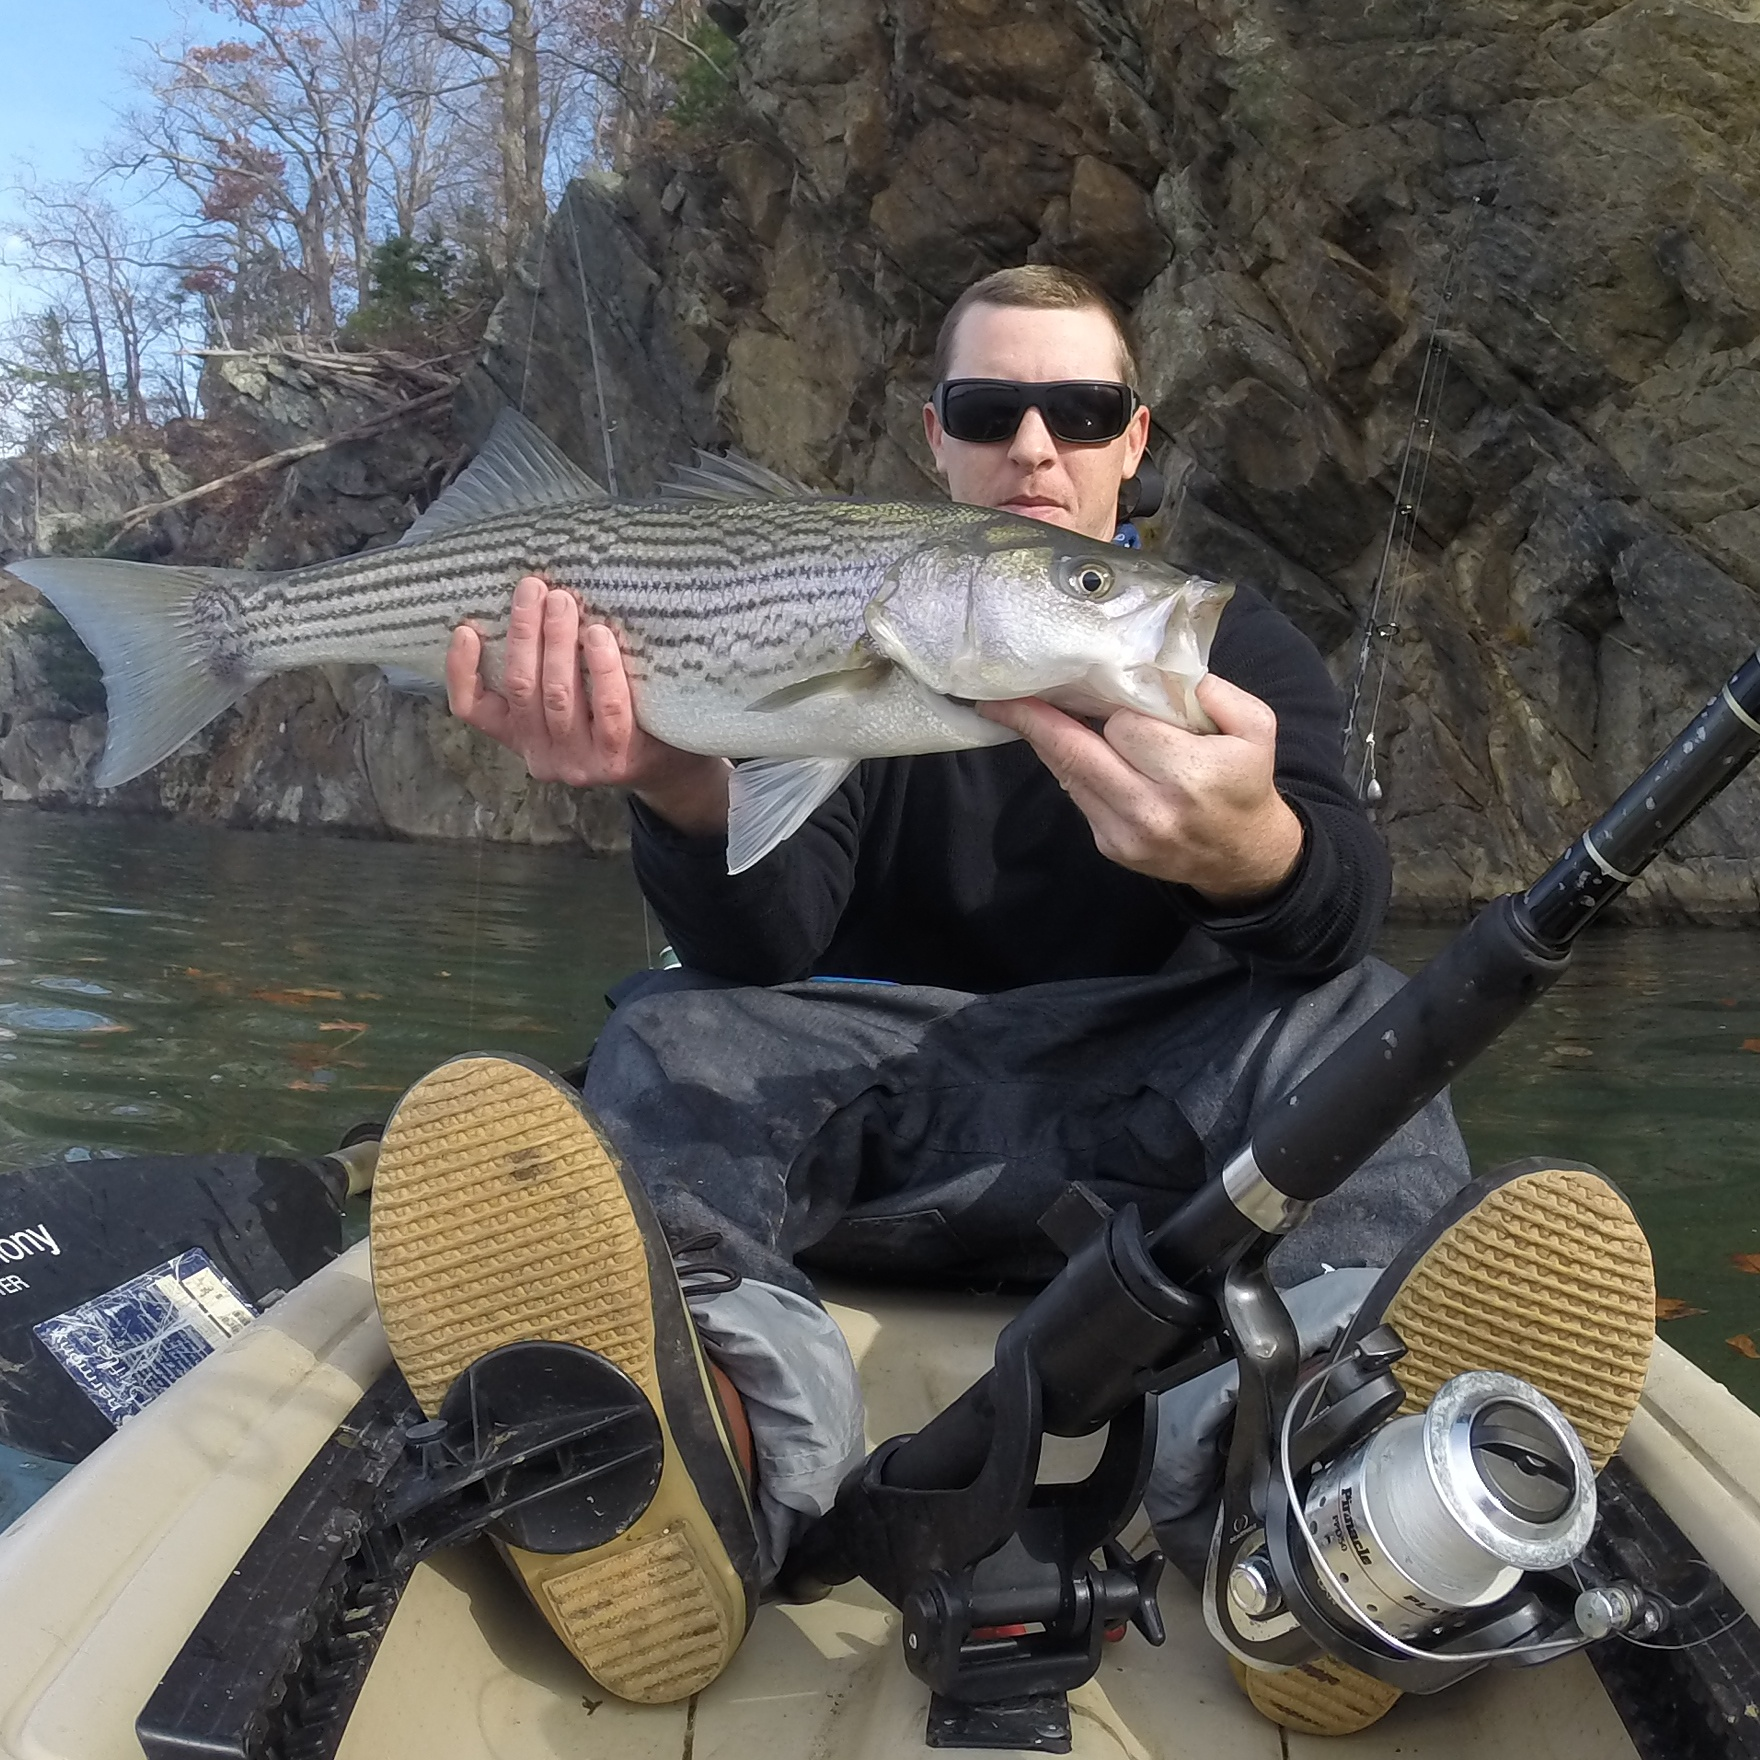 Smith mountain lake lake report by capatian dale wilson for Smith mountain lake fishing report